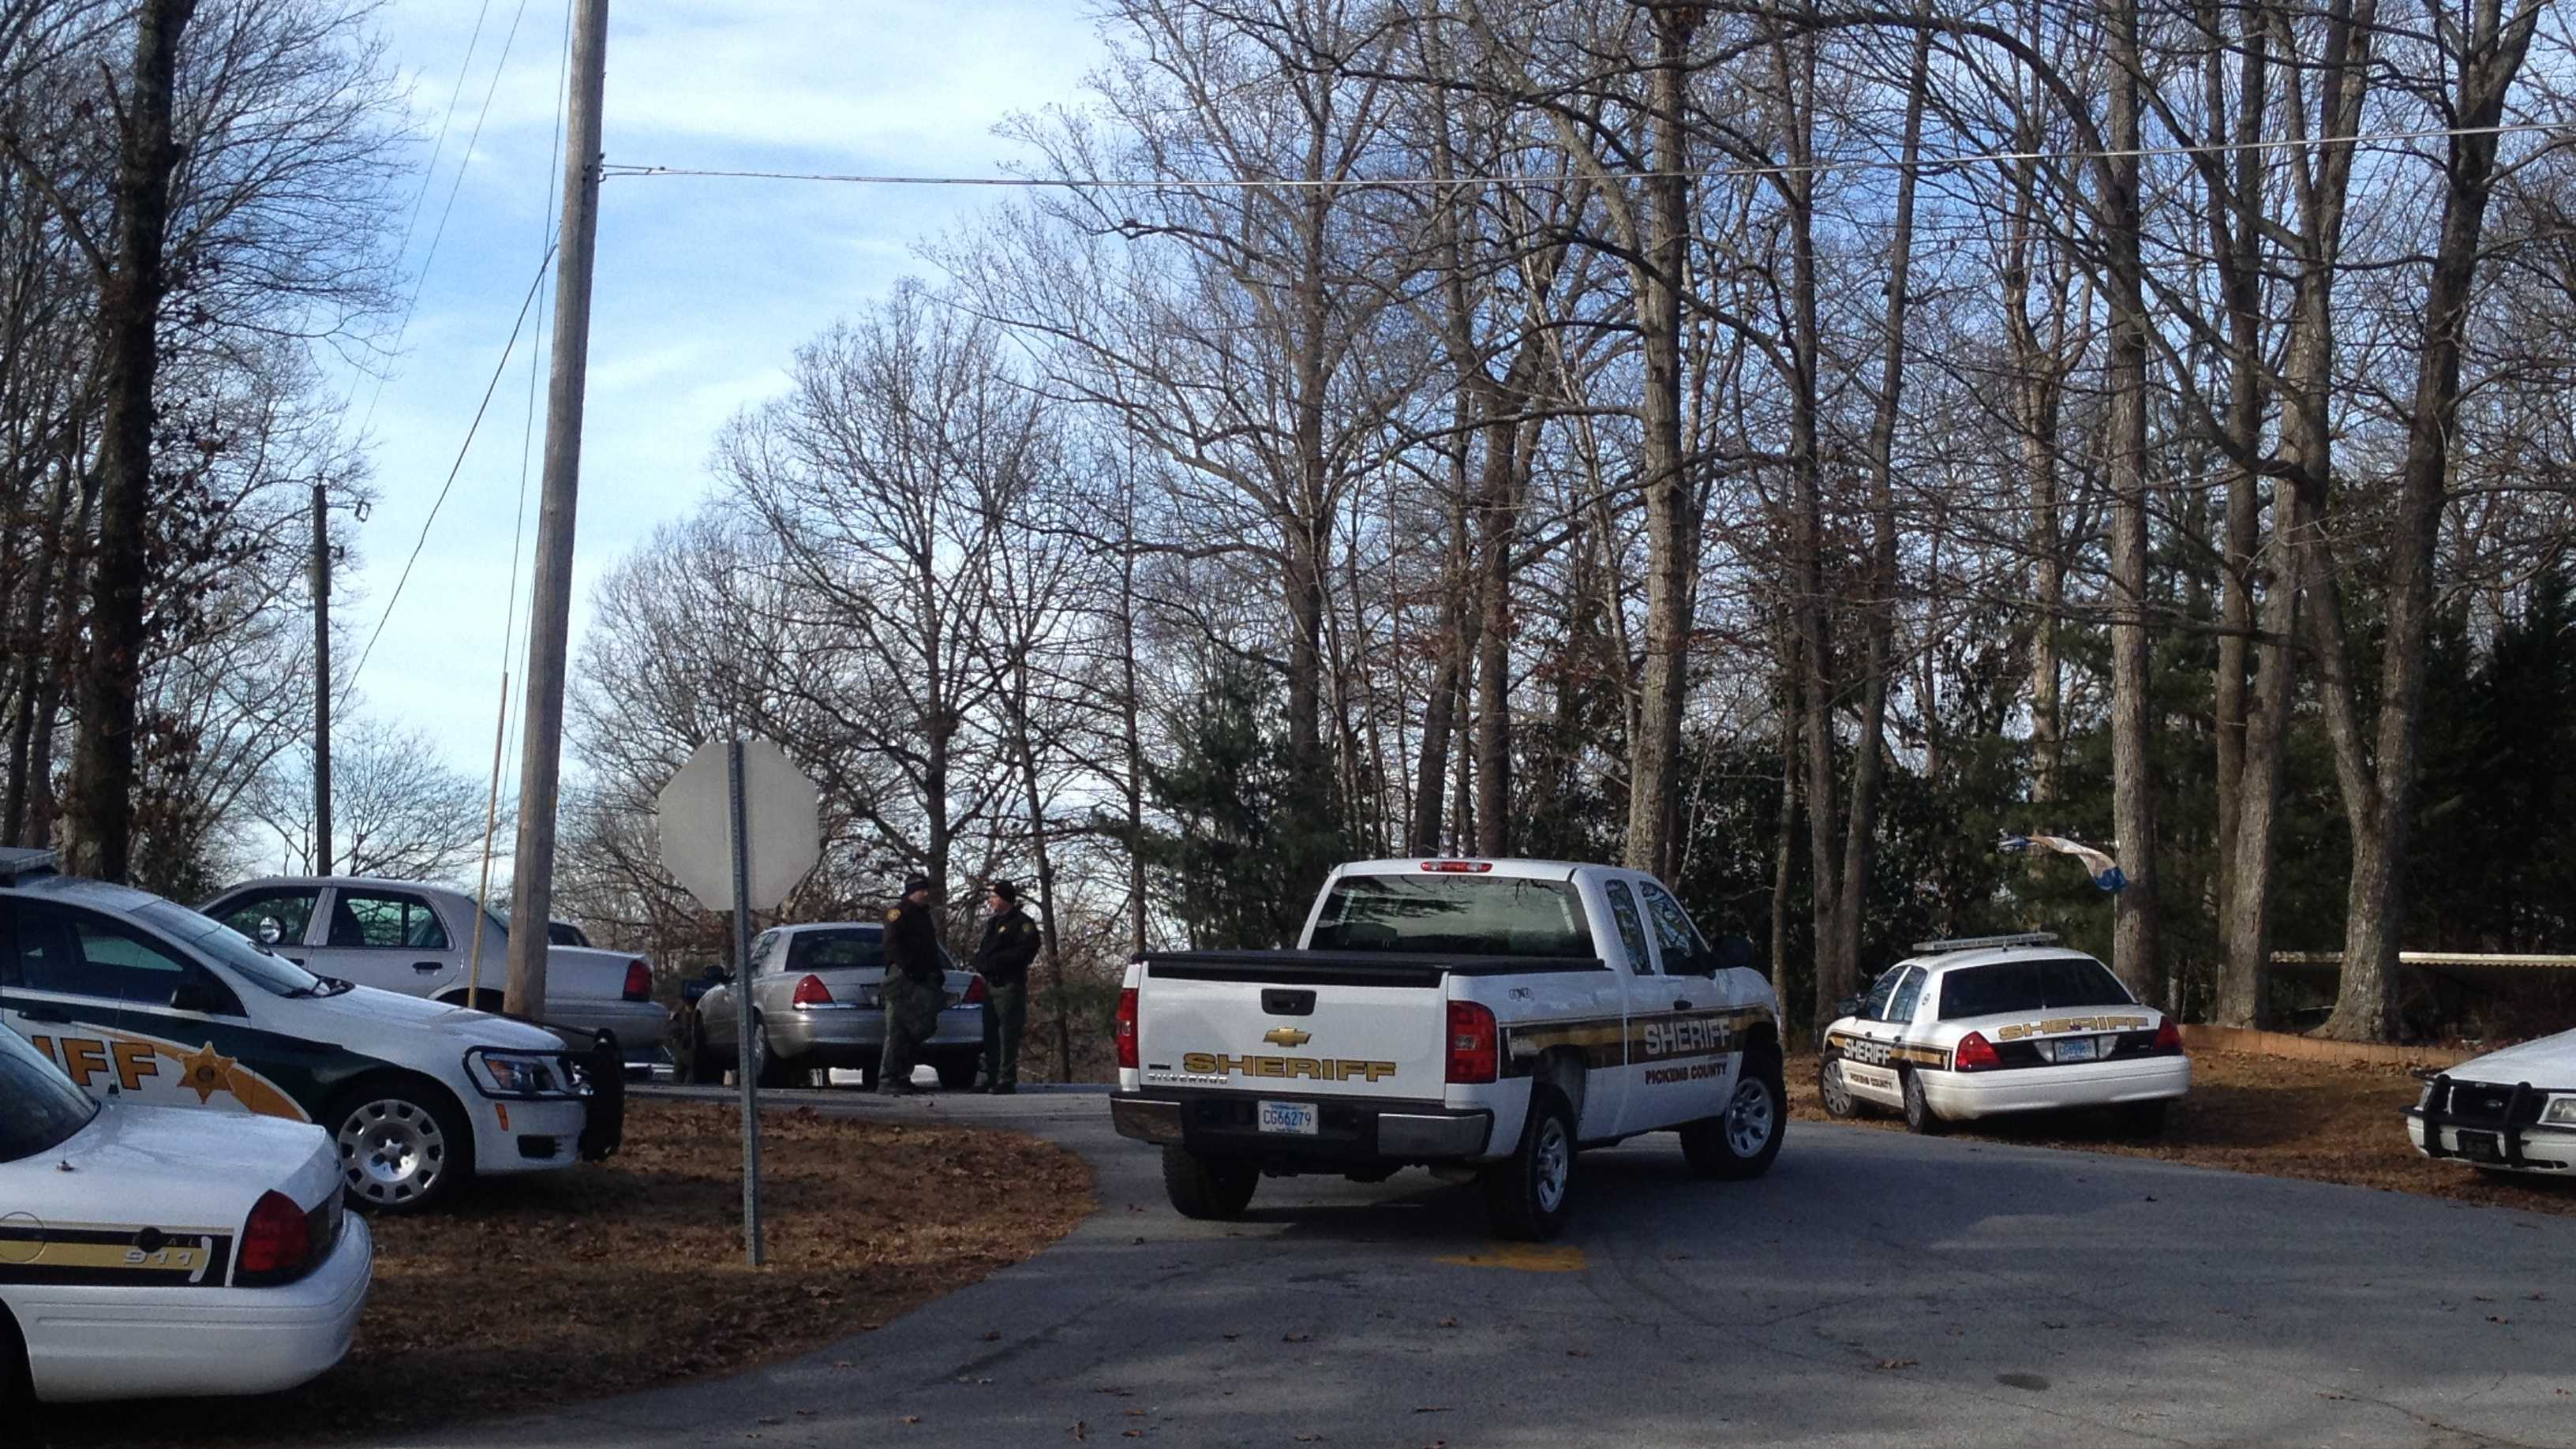 Deputies say a man has barricaded himself in a home after attacking his wife.